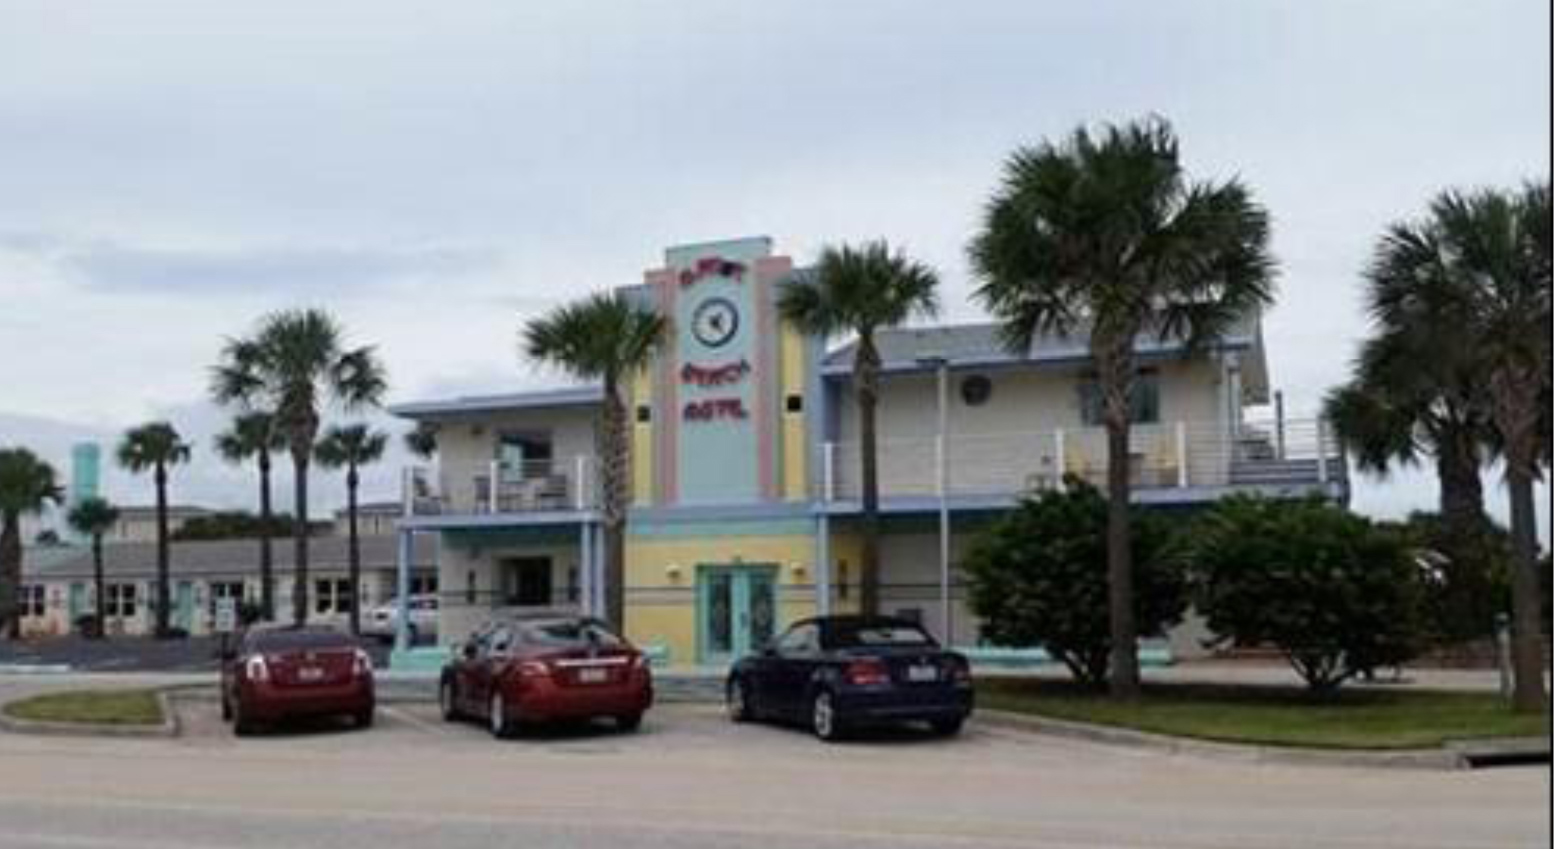 The restored historic Magic Beach Motel, Vilano Beach Main Street